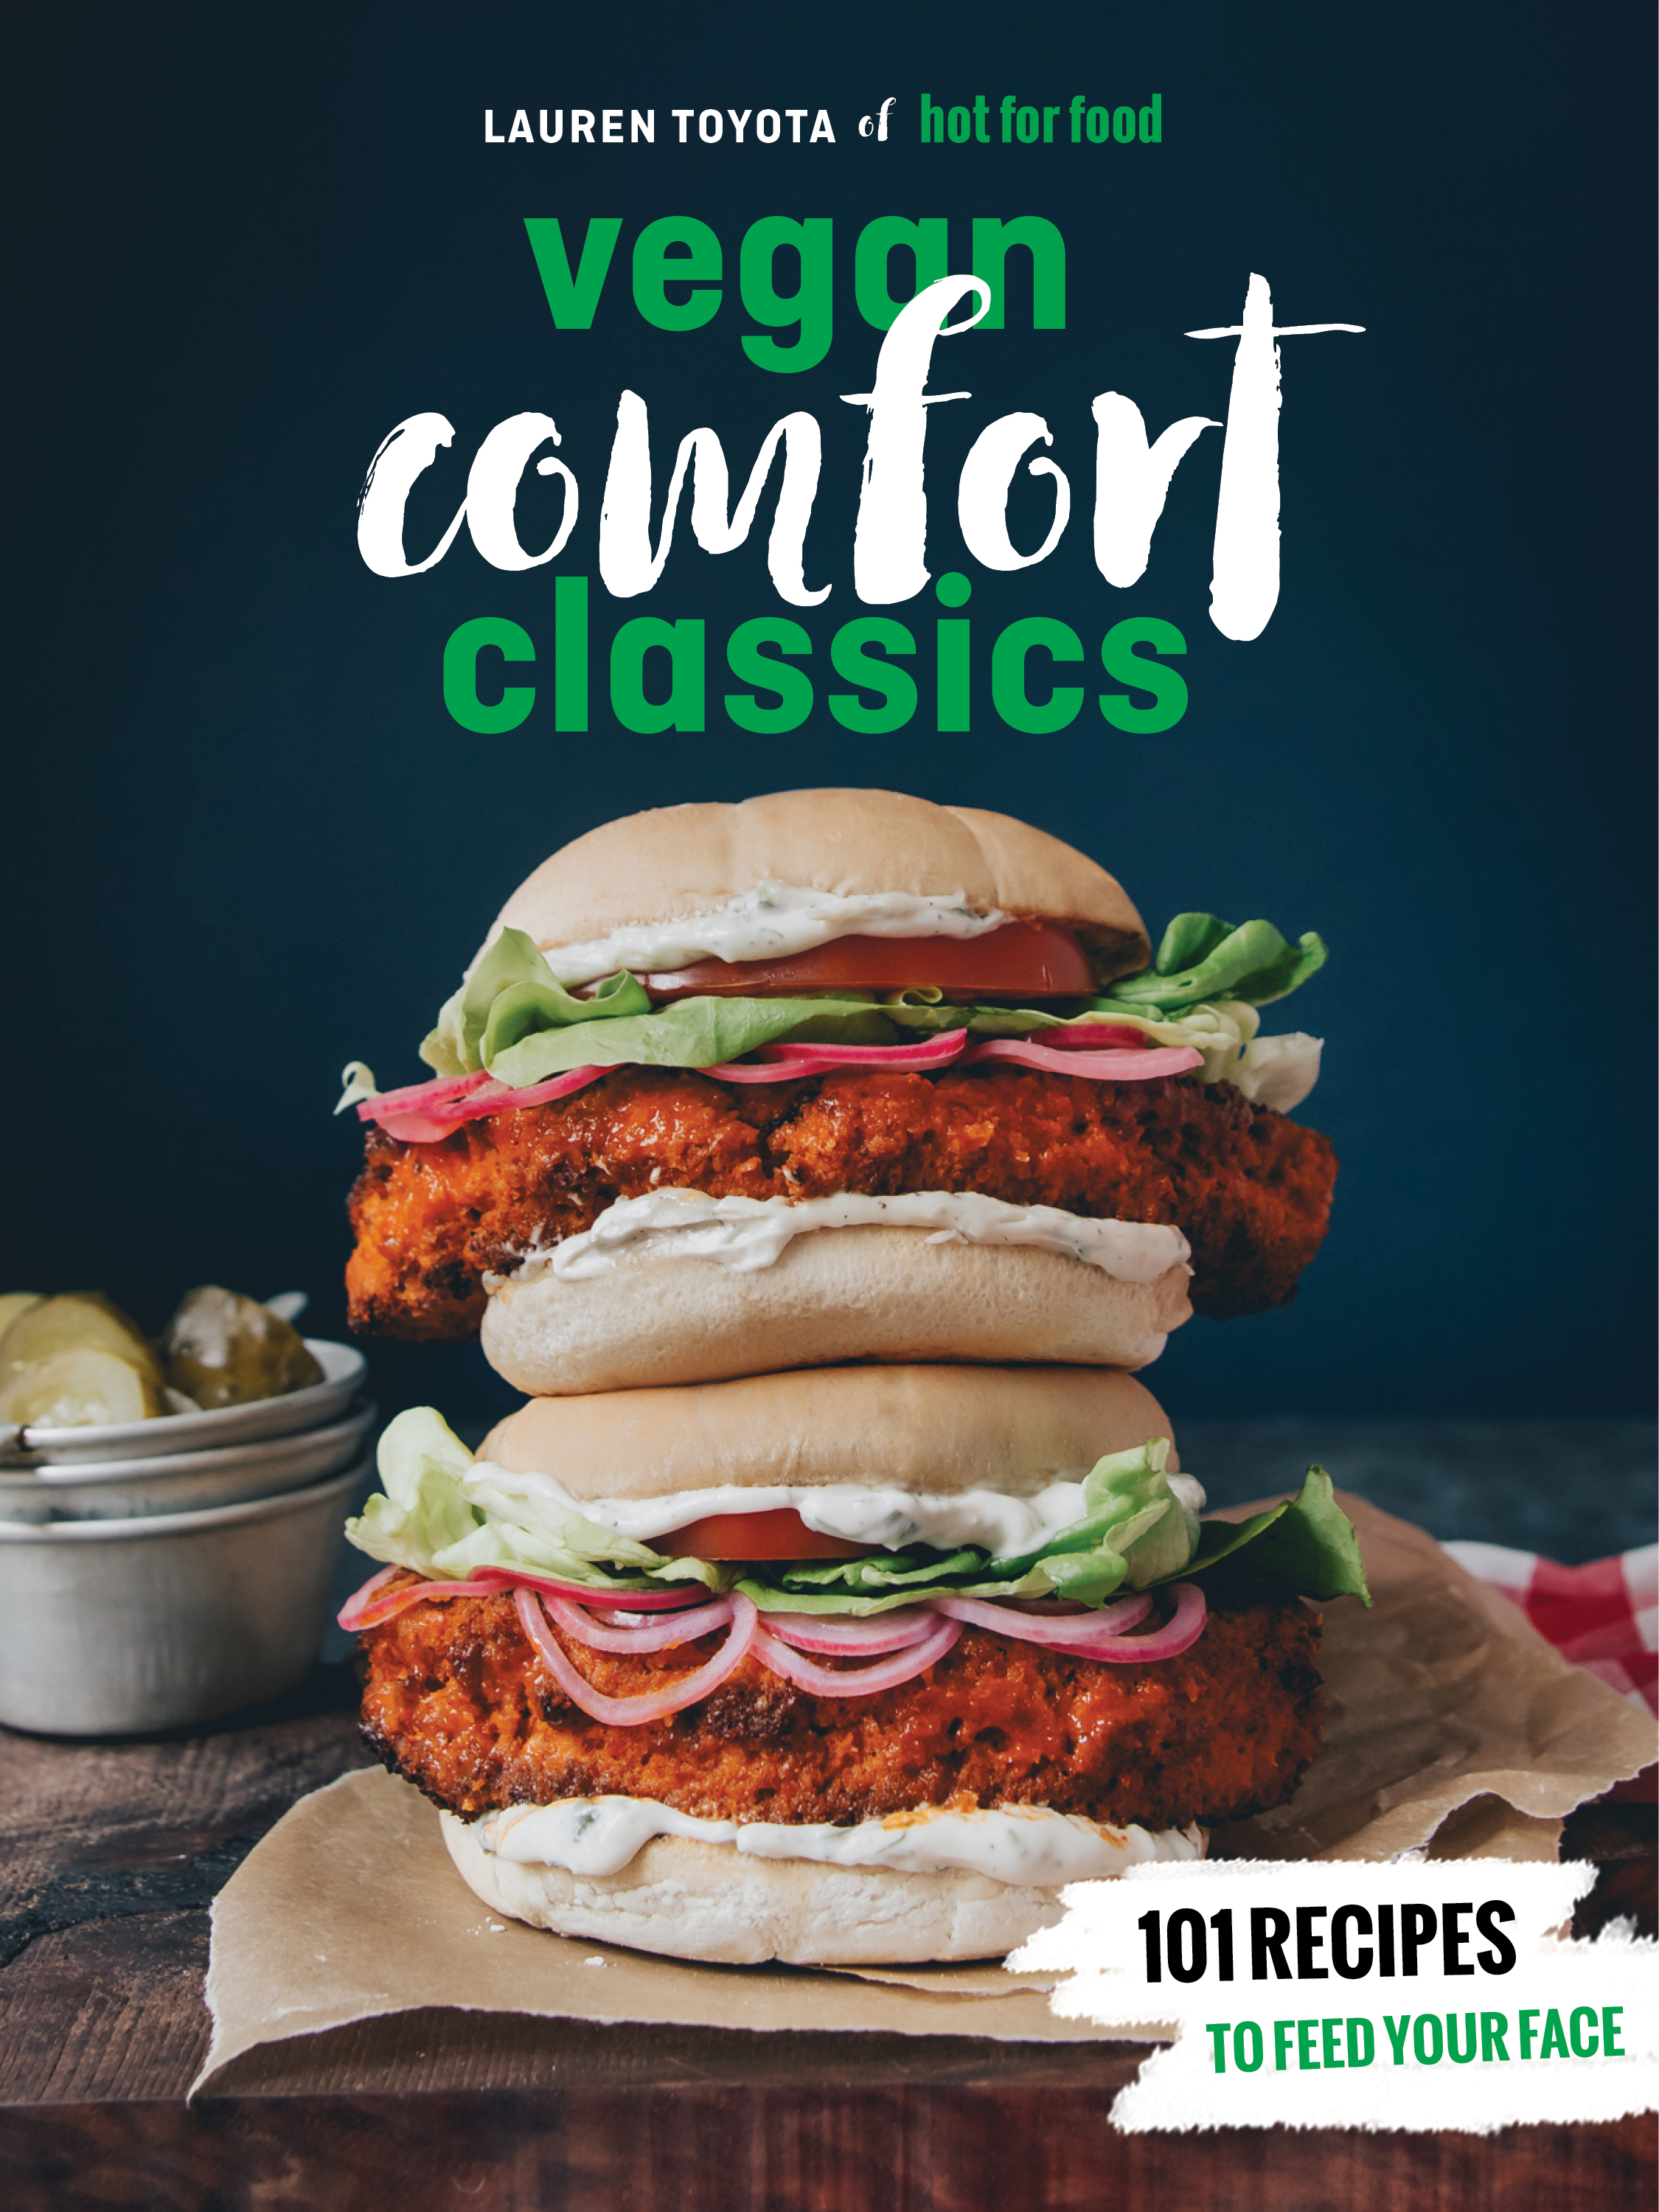 Brooklyn Book Launch: Vegan Comfort Classics by Lauren Toyota of Hot for Food!